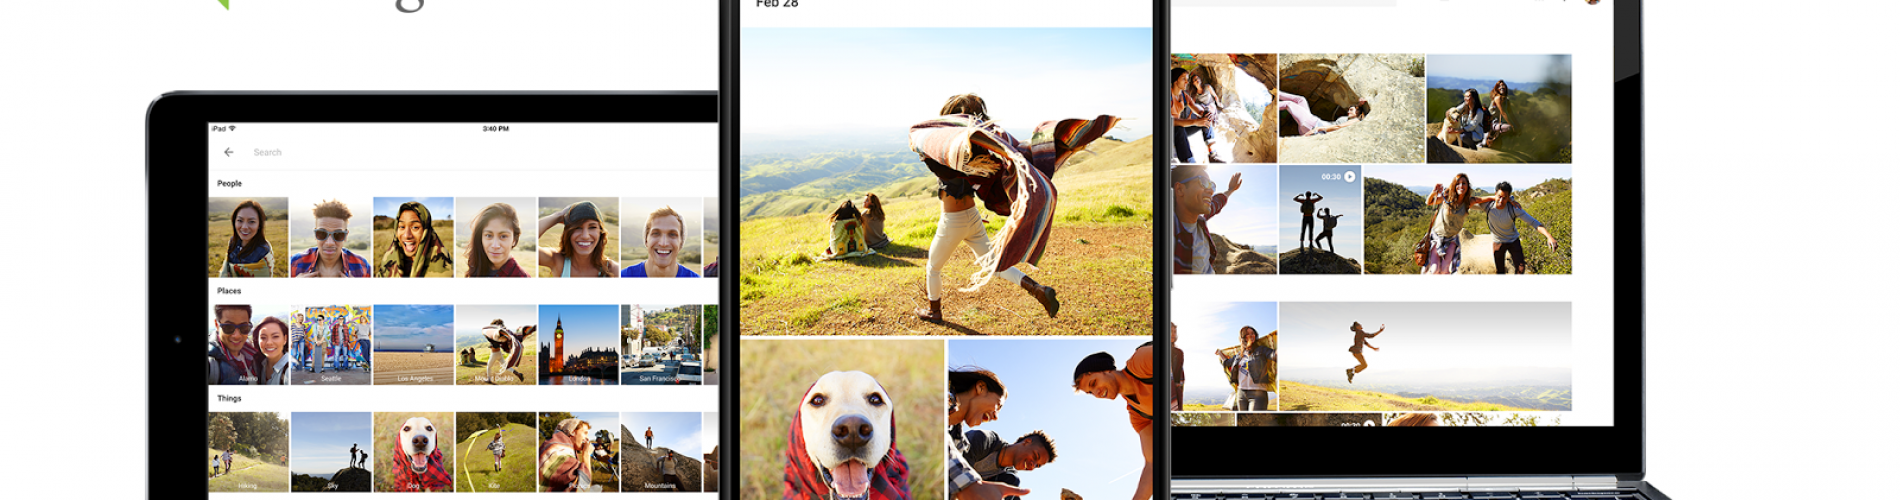 Google rethinks pictures and videos with launch of Photos